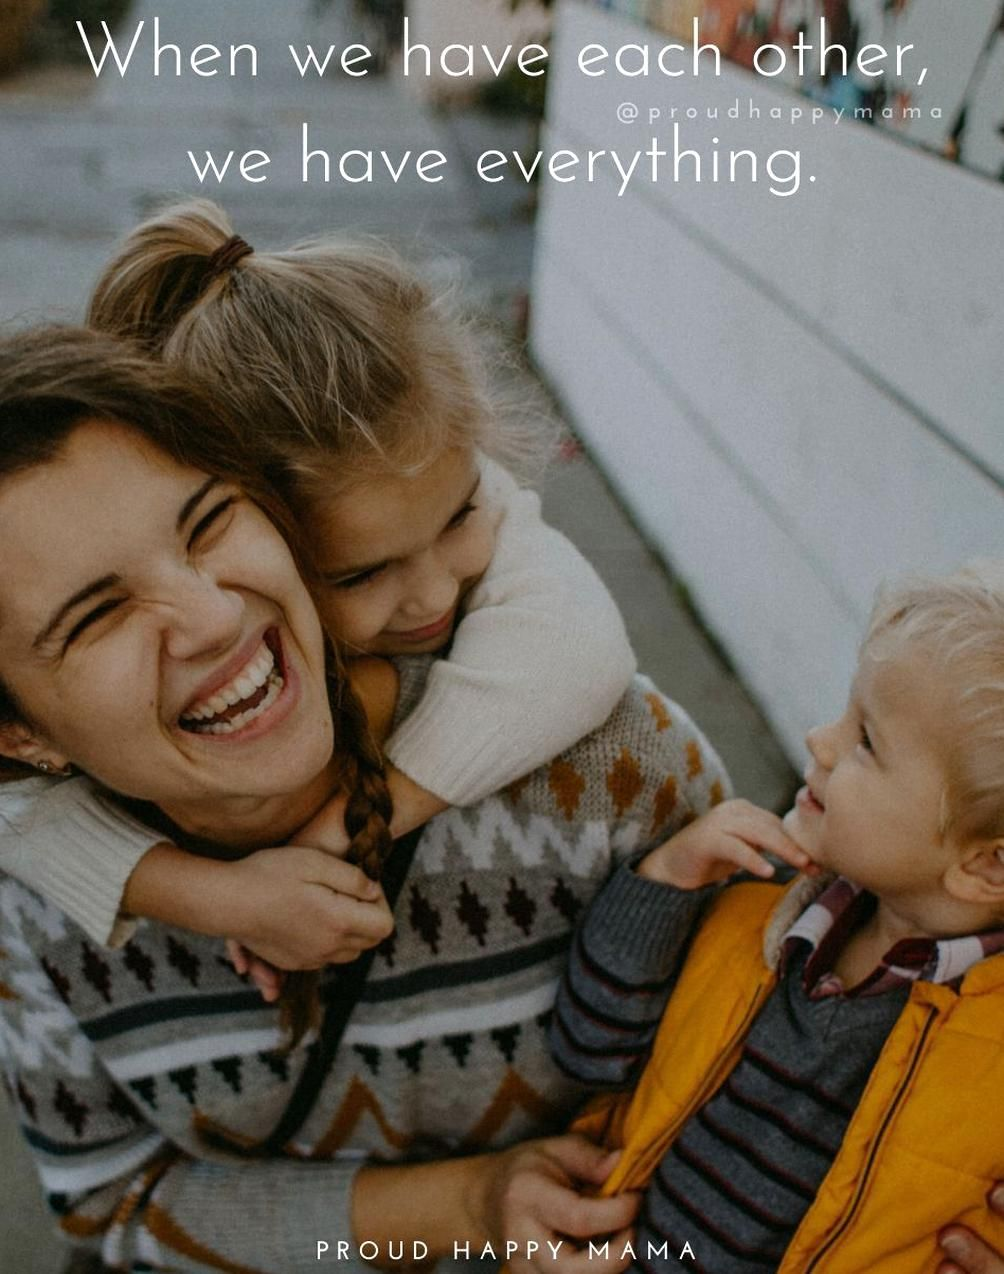 Are You Looking For The Best Sibling Love Quotes And Sayings Then Lucky For You Havee To The Right Place My Children Quotes Toddler Quotes Love My Kids Quotes